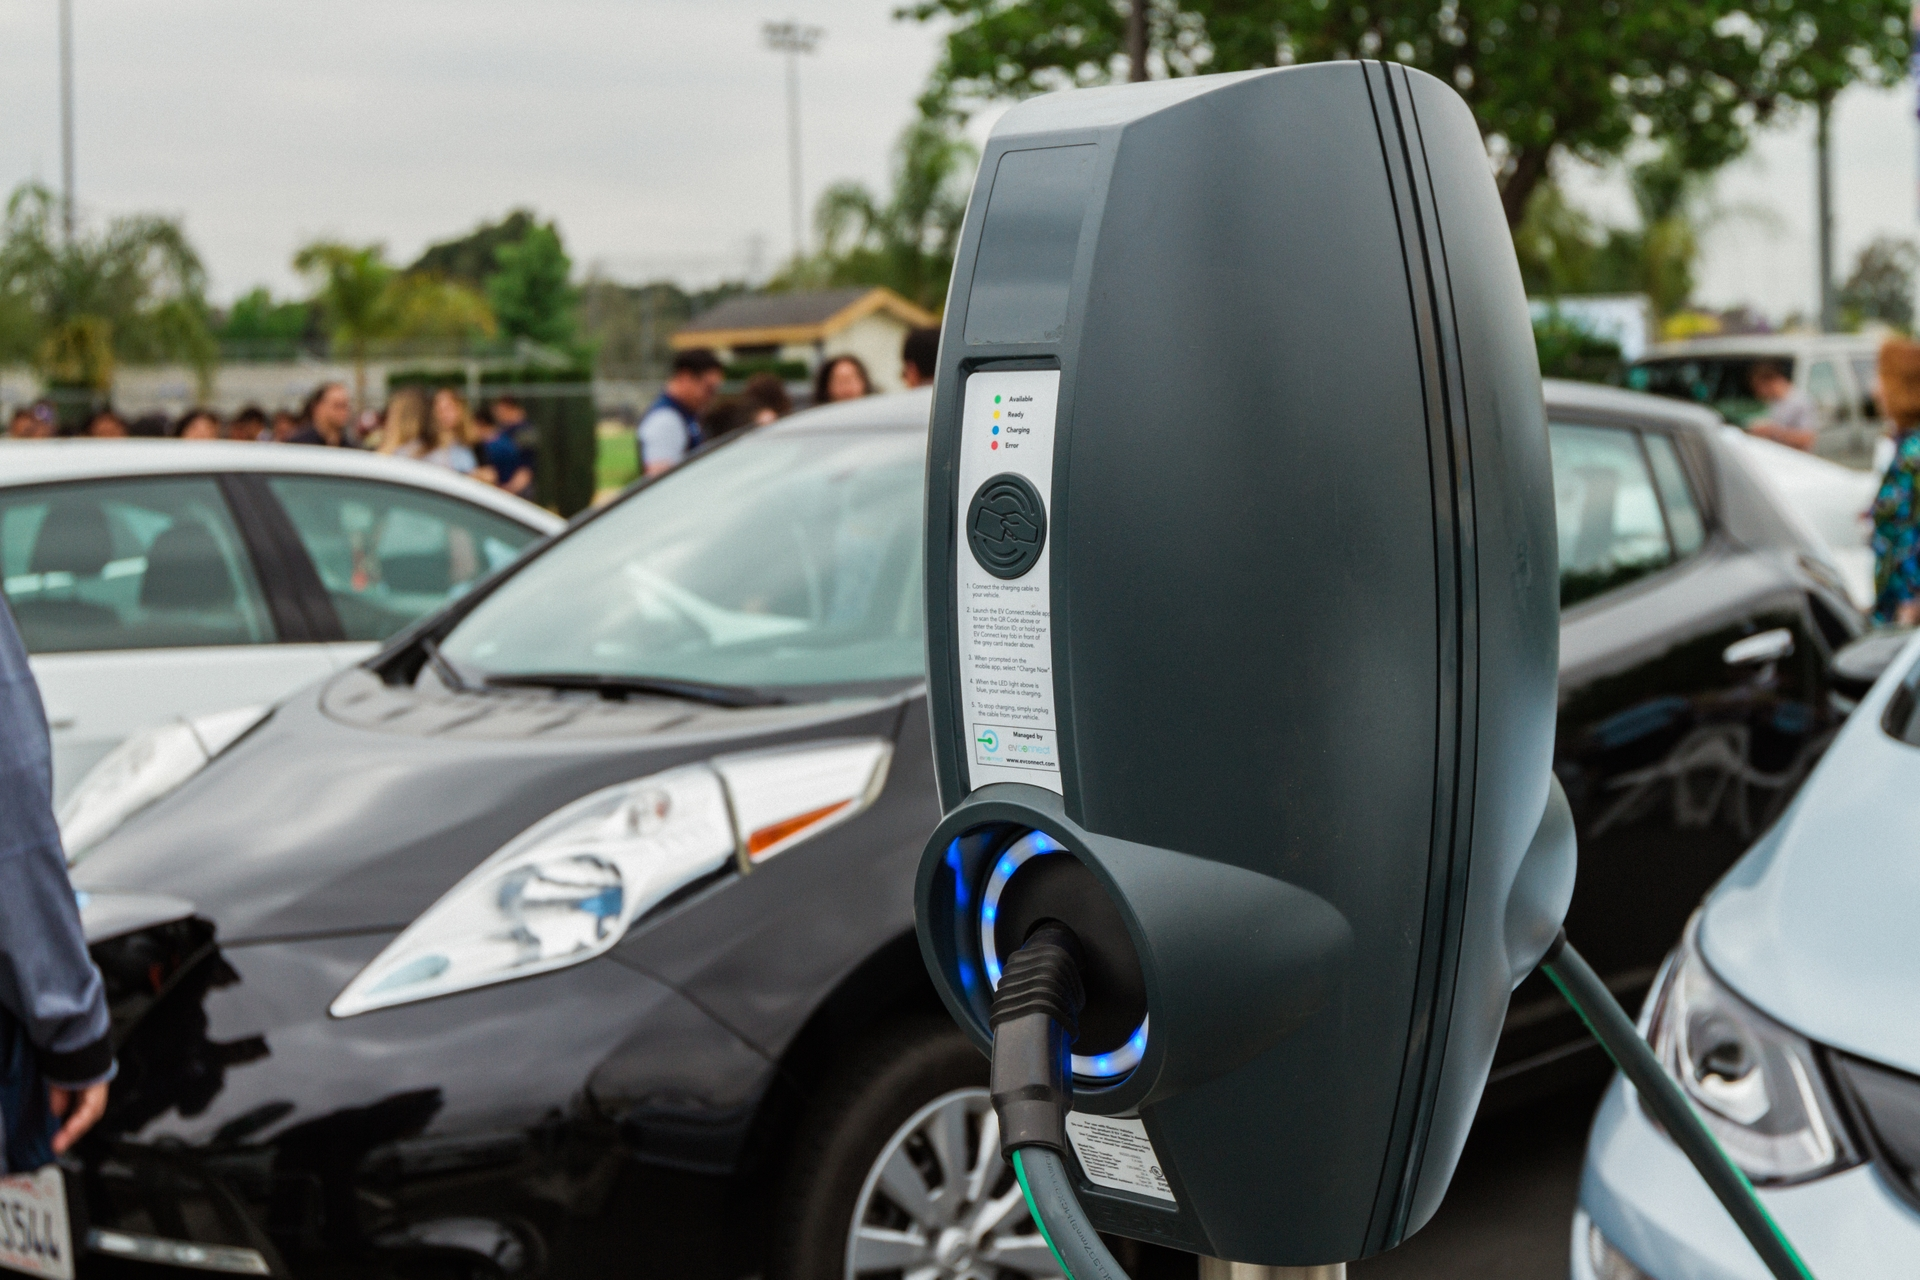 Charging stations have been installed at South El Monte High School through SCE's Charge Ready program.